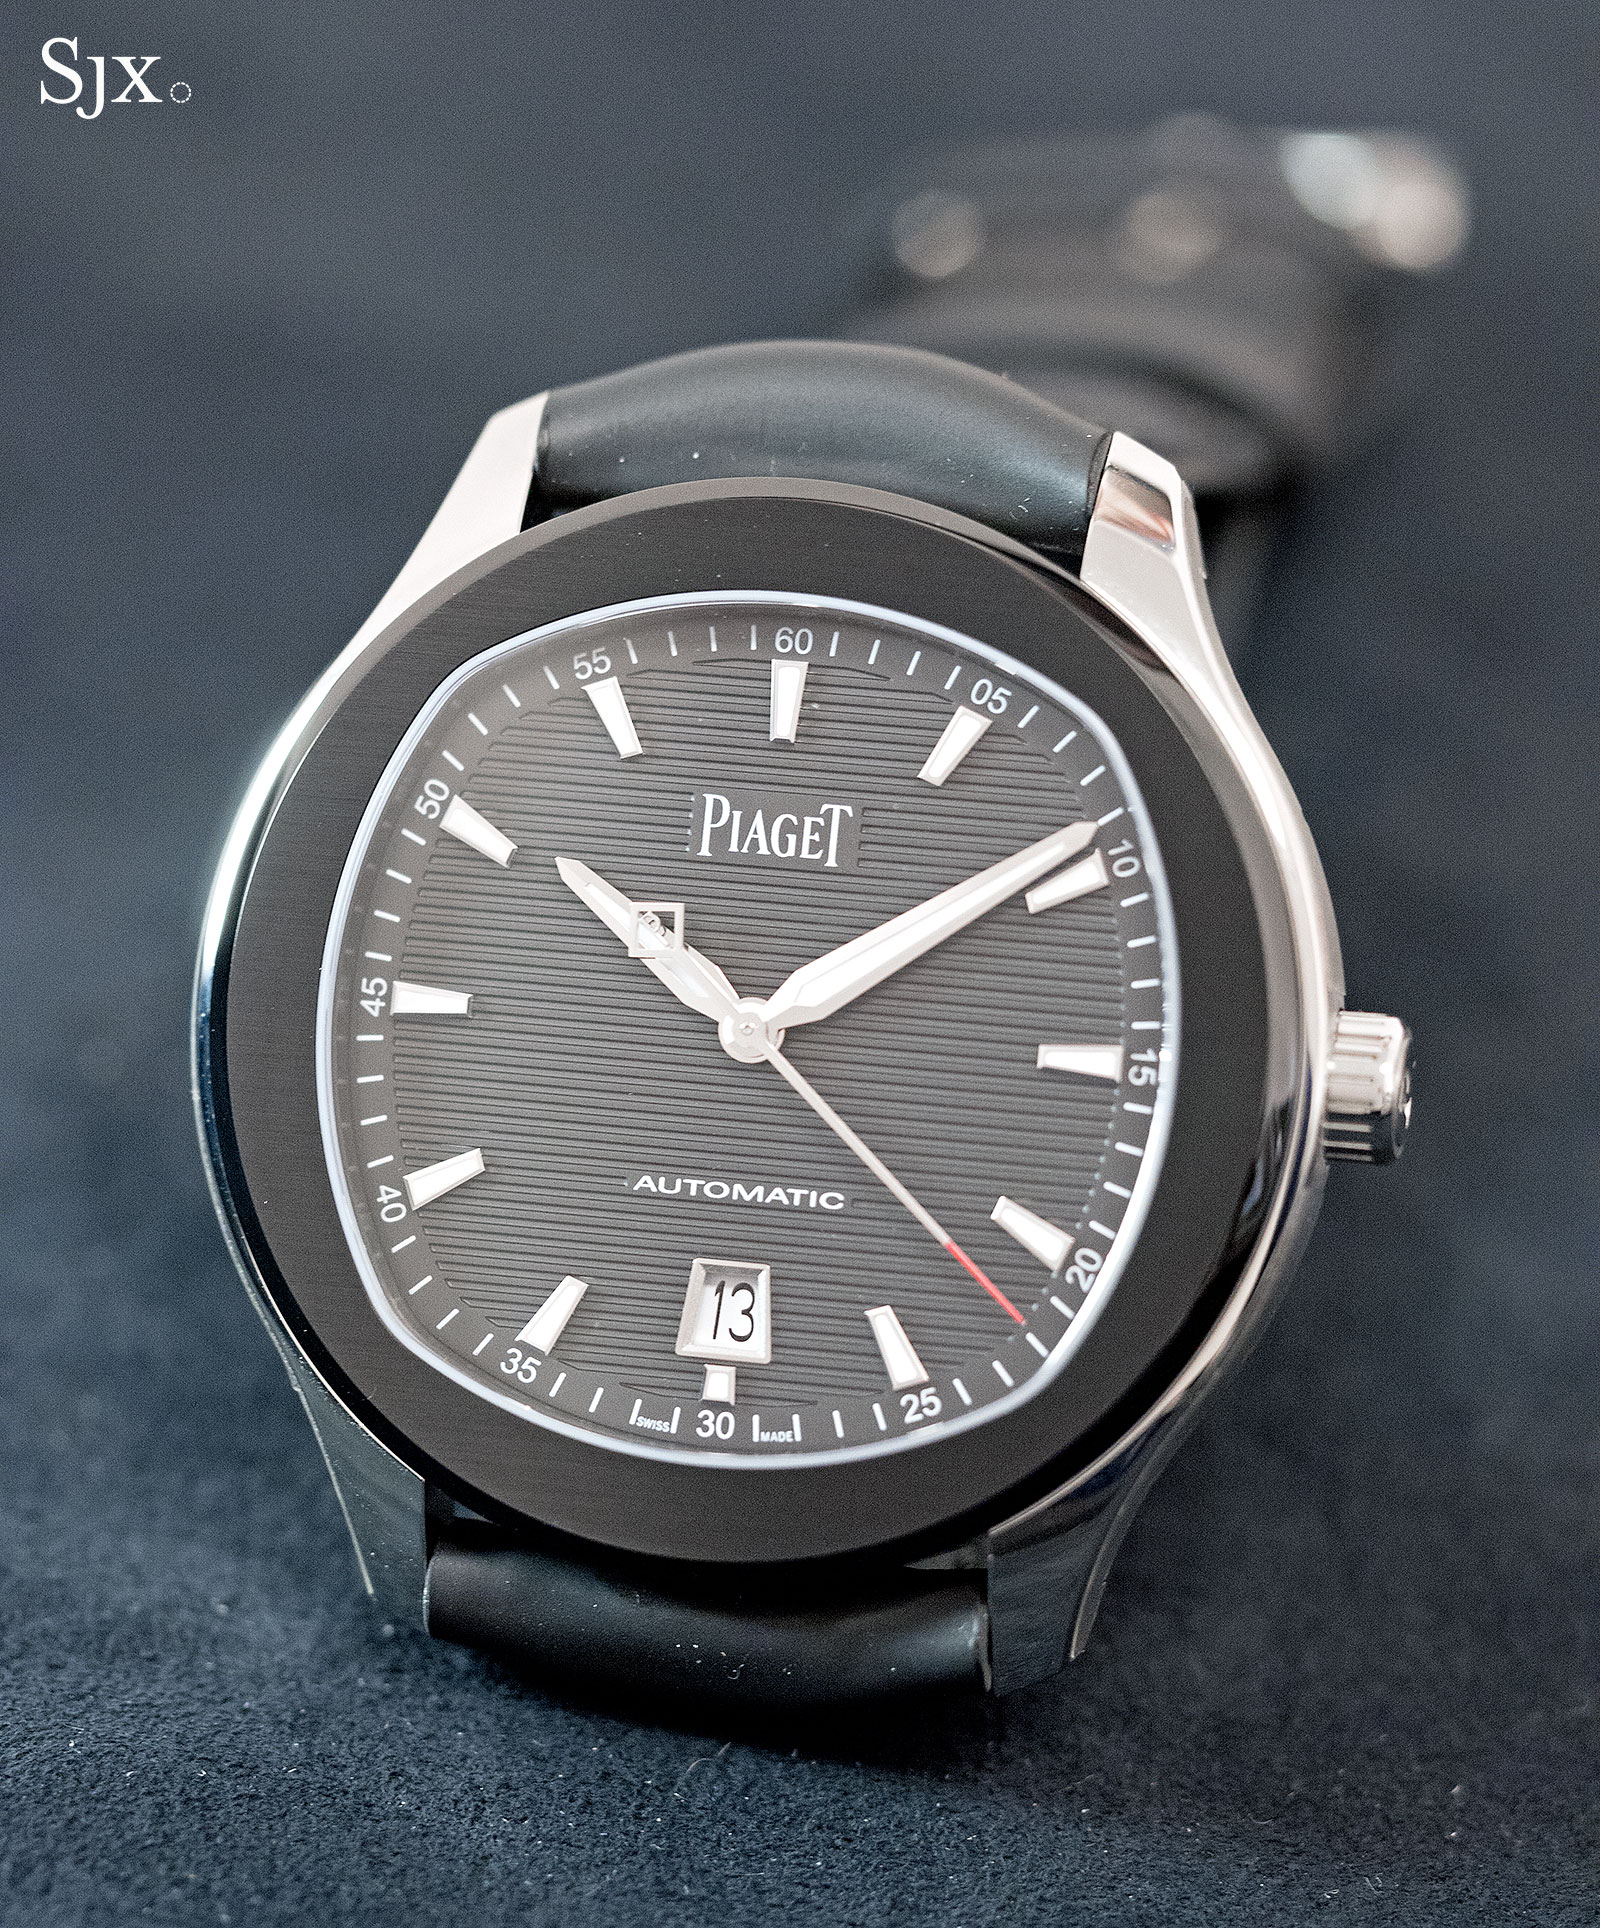 Piaget Polo S Black ADLC-1